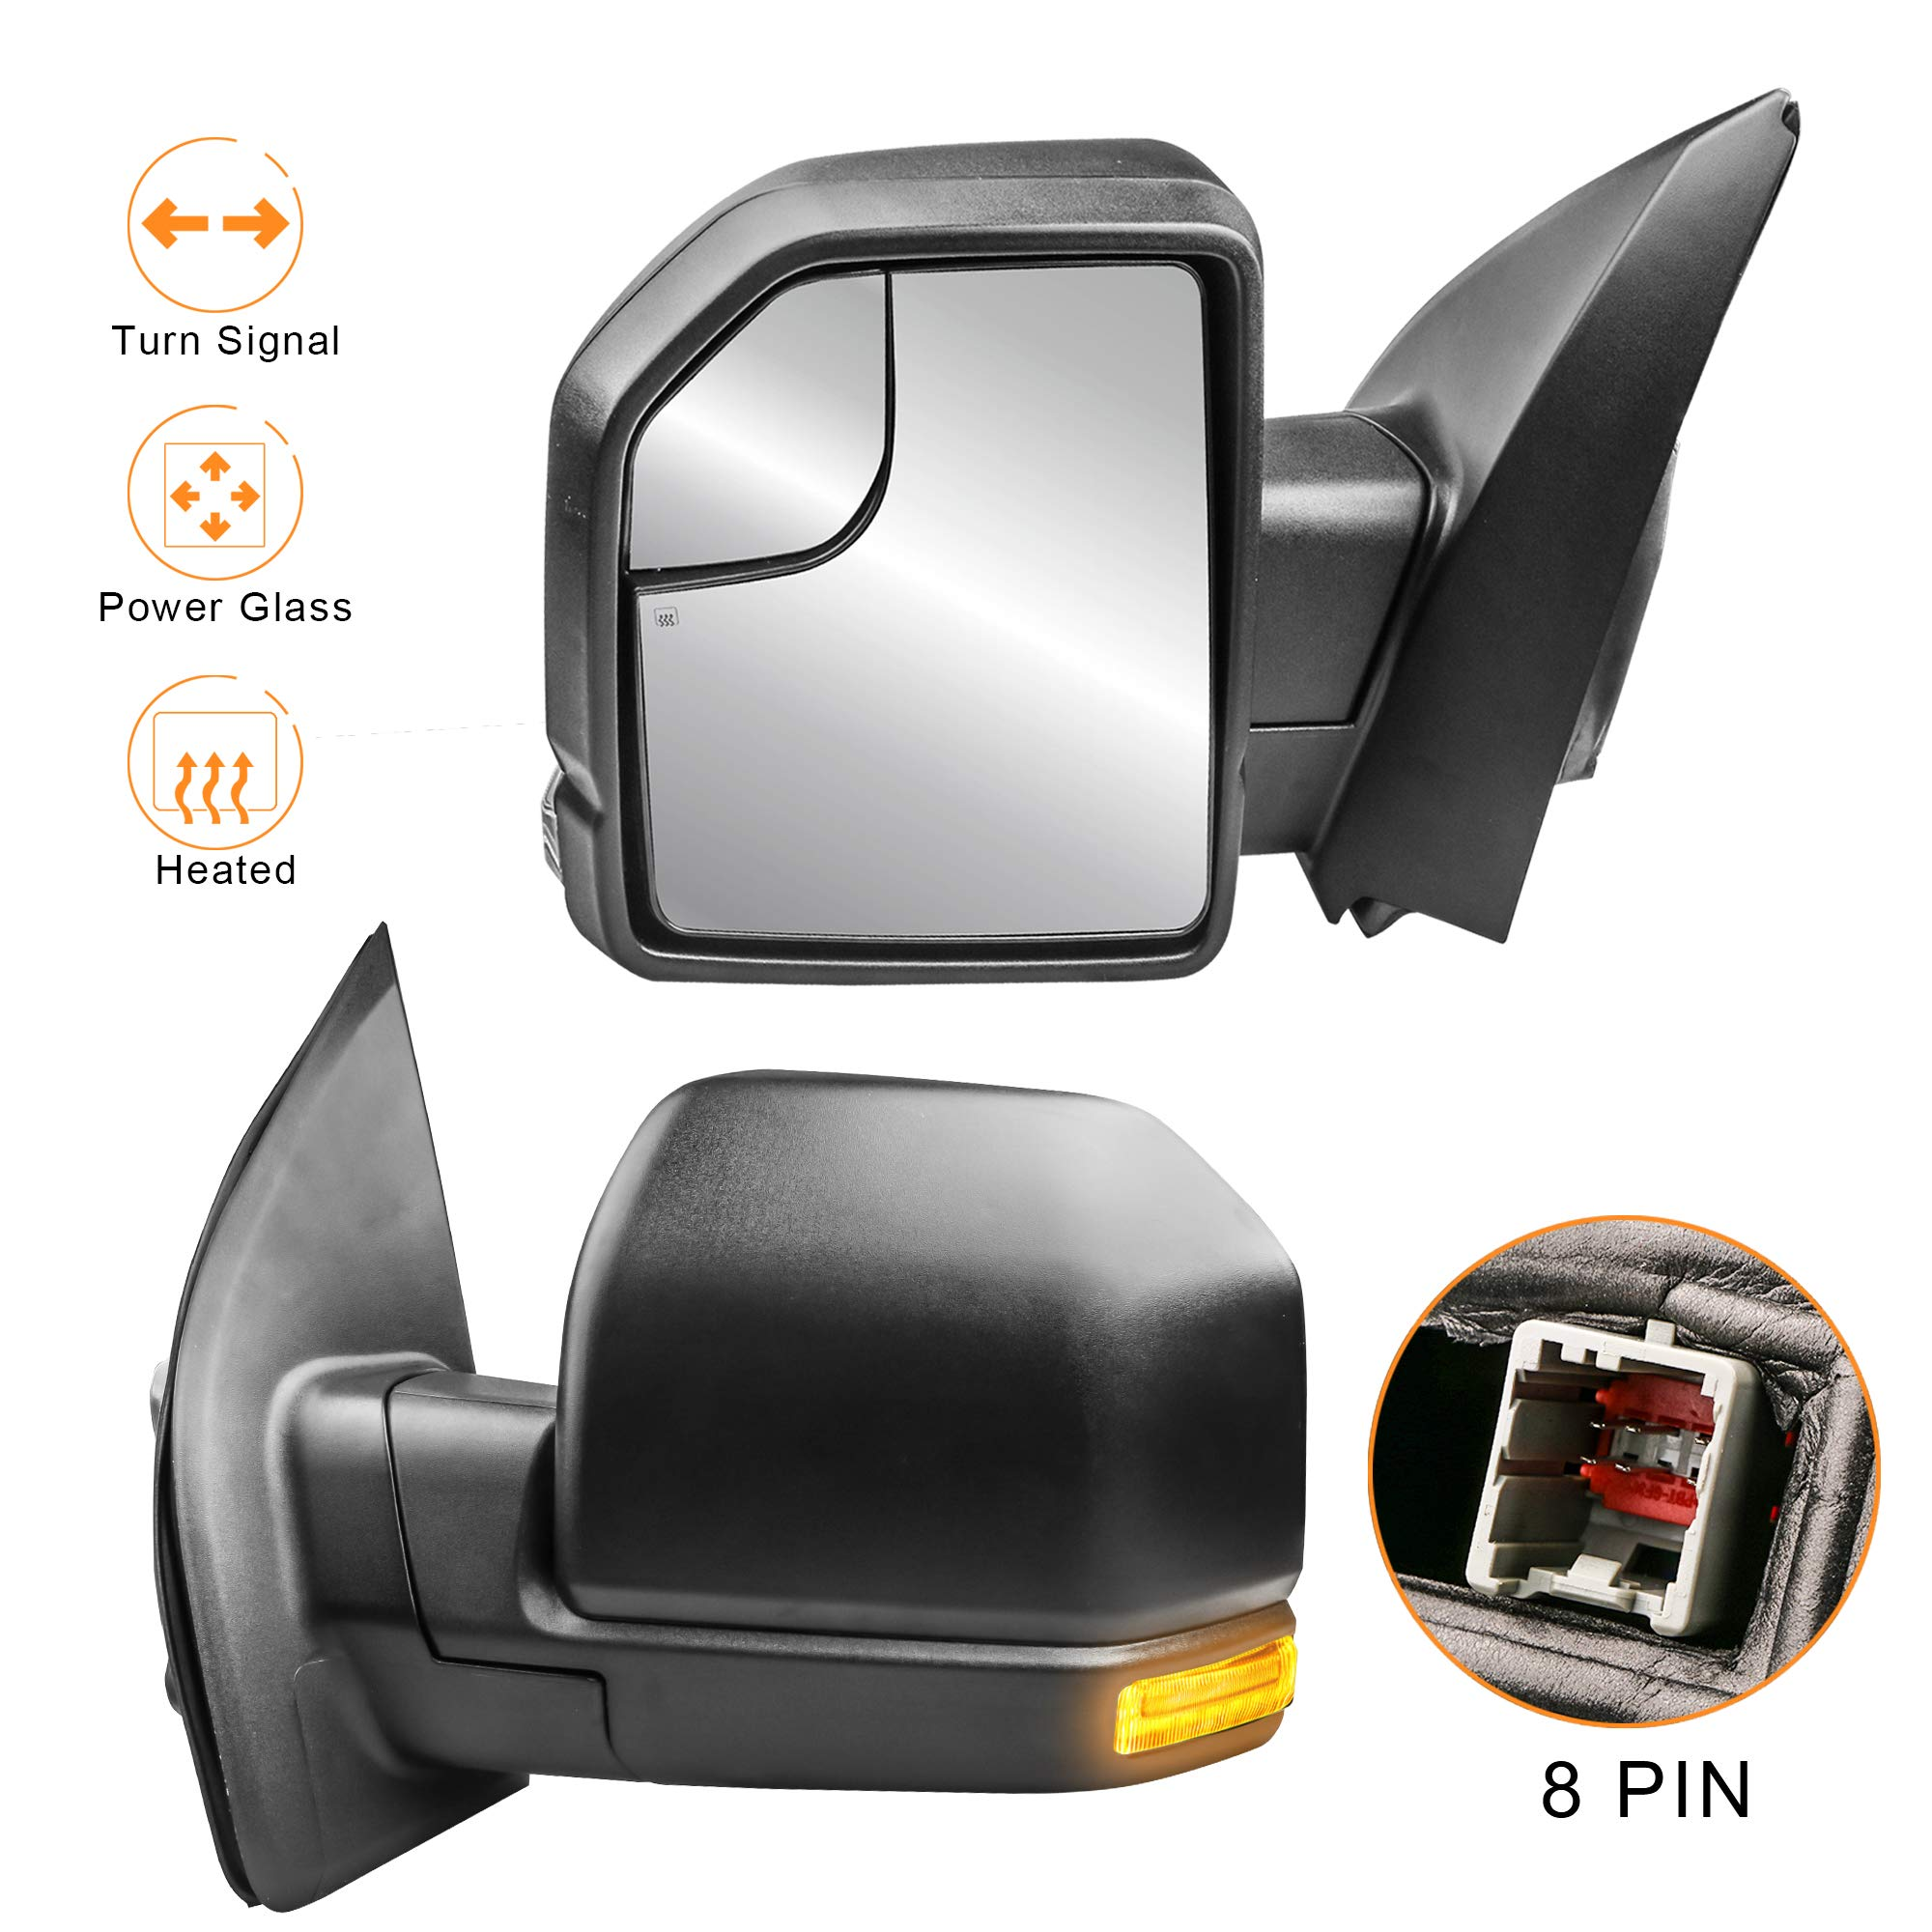 MOSTPLUS New 8 PIN Power Heated Towing Mirrors for Ford F150 2015 2016 2017 w/Turn Signal (Left+Right Side Mirror) by MOSTPLUS (Image #1)